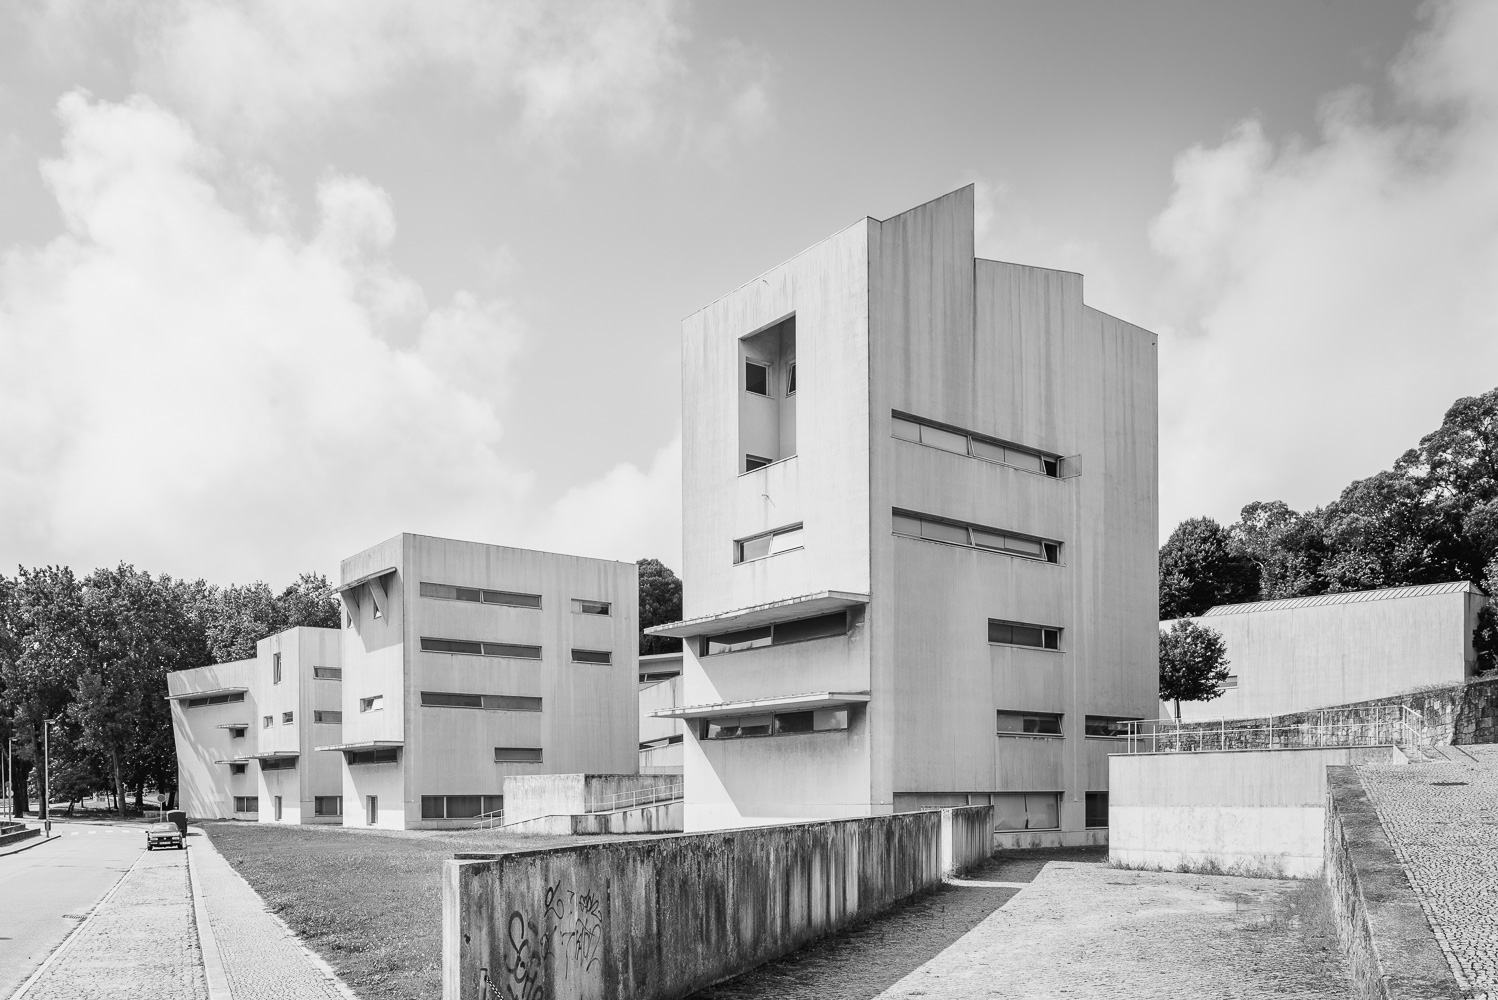 dacian-groza-concrete-black-and-white-architectural-photography-29-0890.jpg